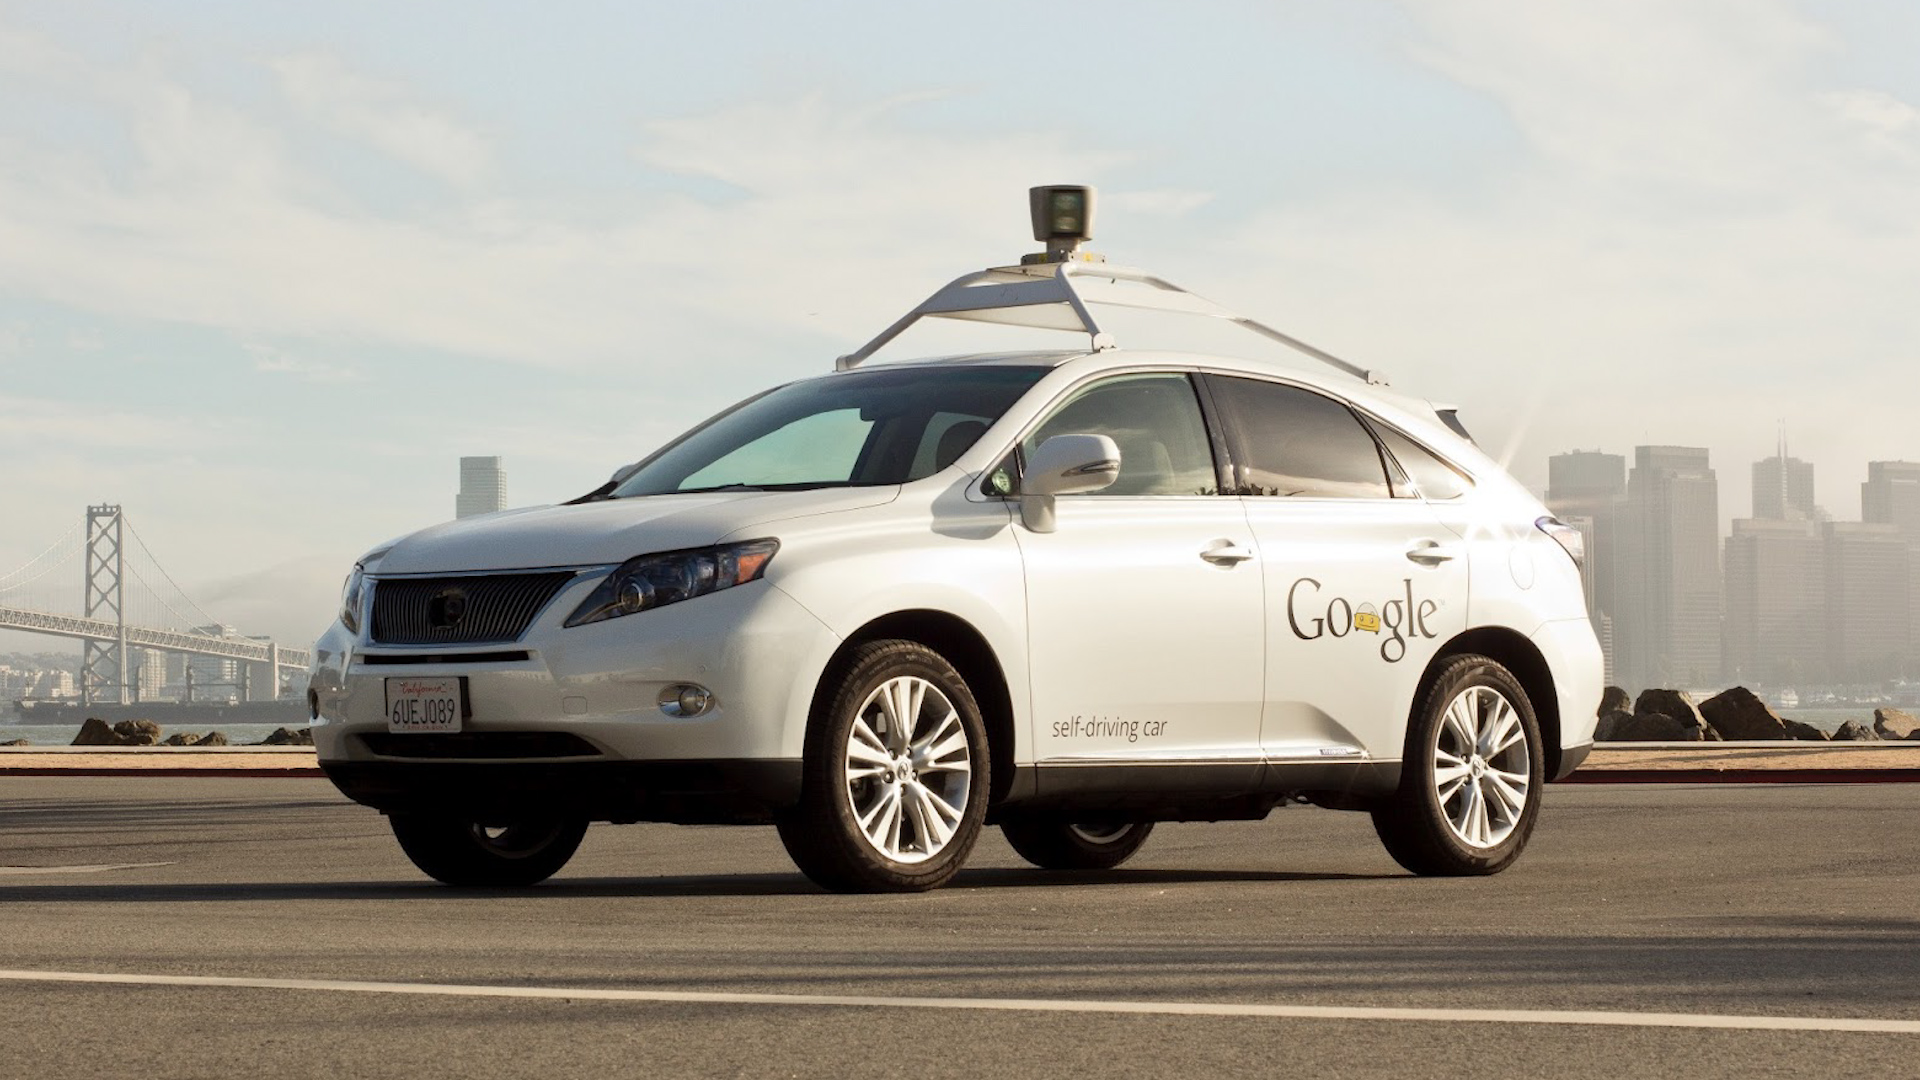 Google hiring self-driving car testers